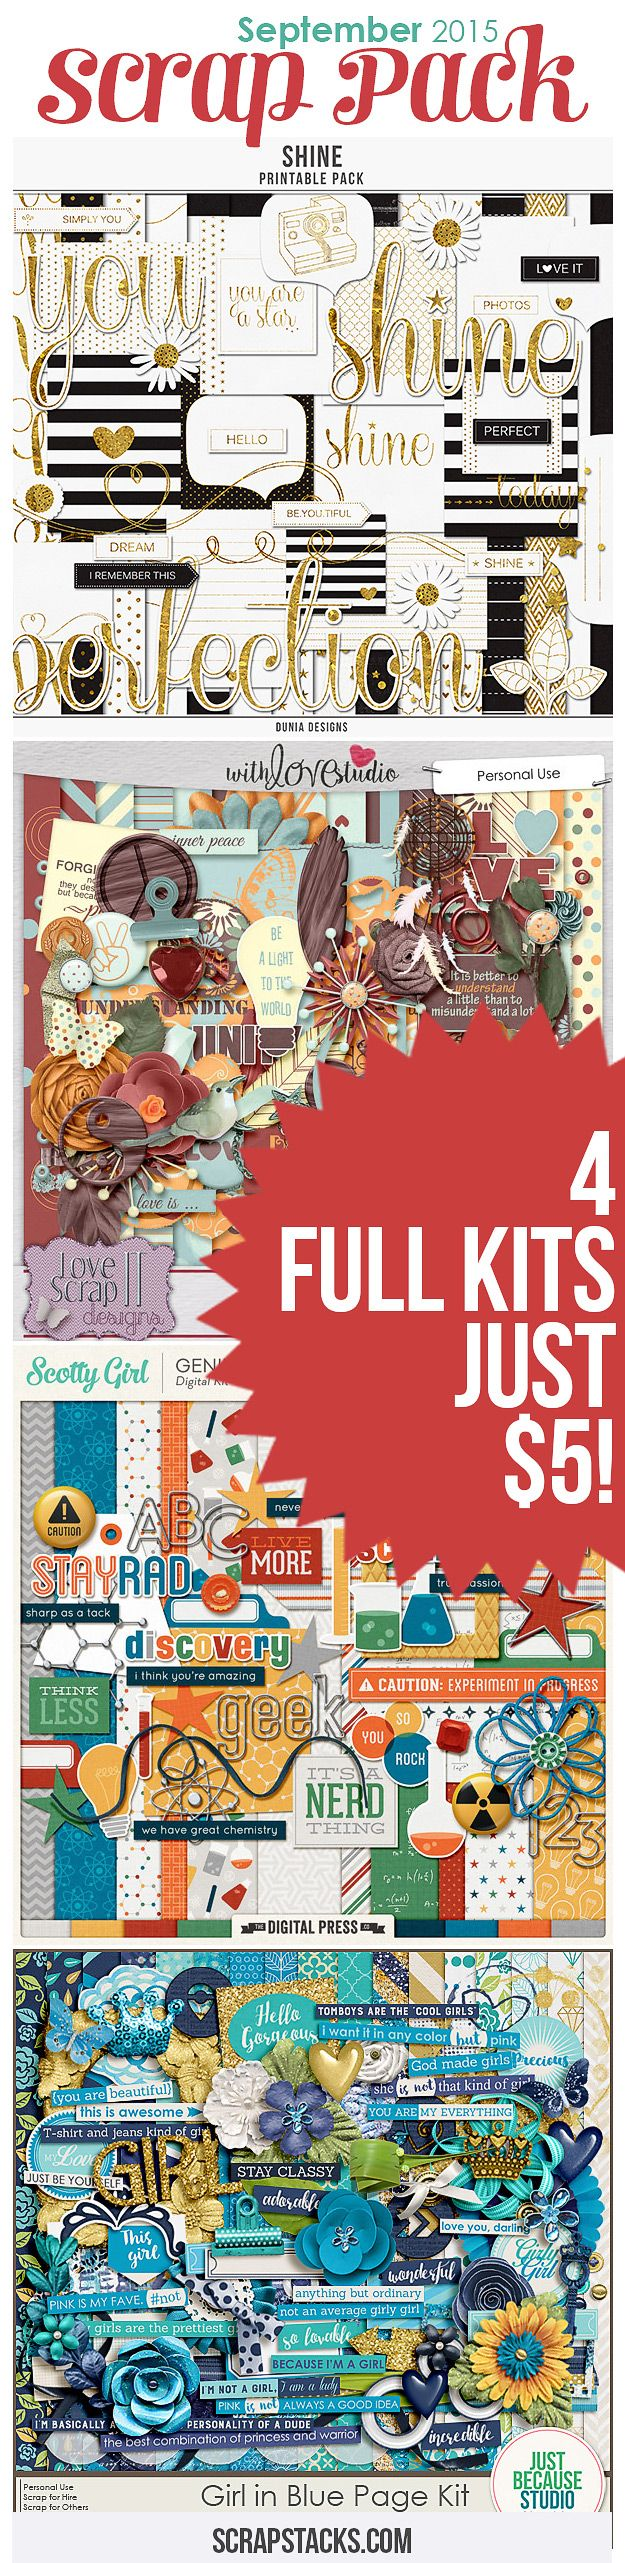 The September Scrap Pack is here! 4 Digital Scrapbooking kits for just $5!